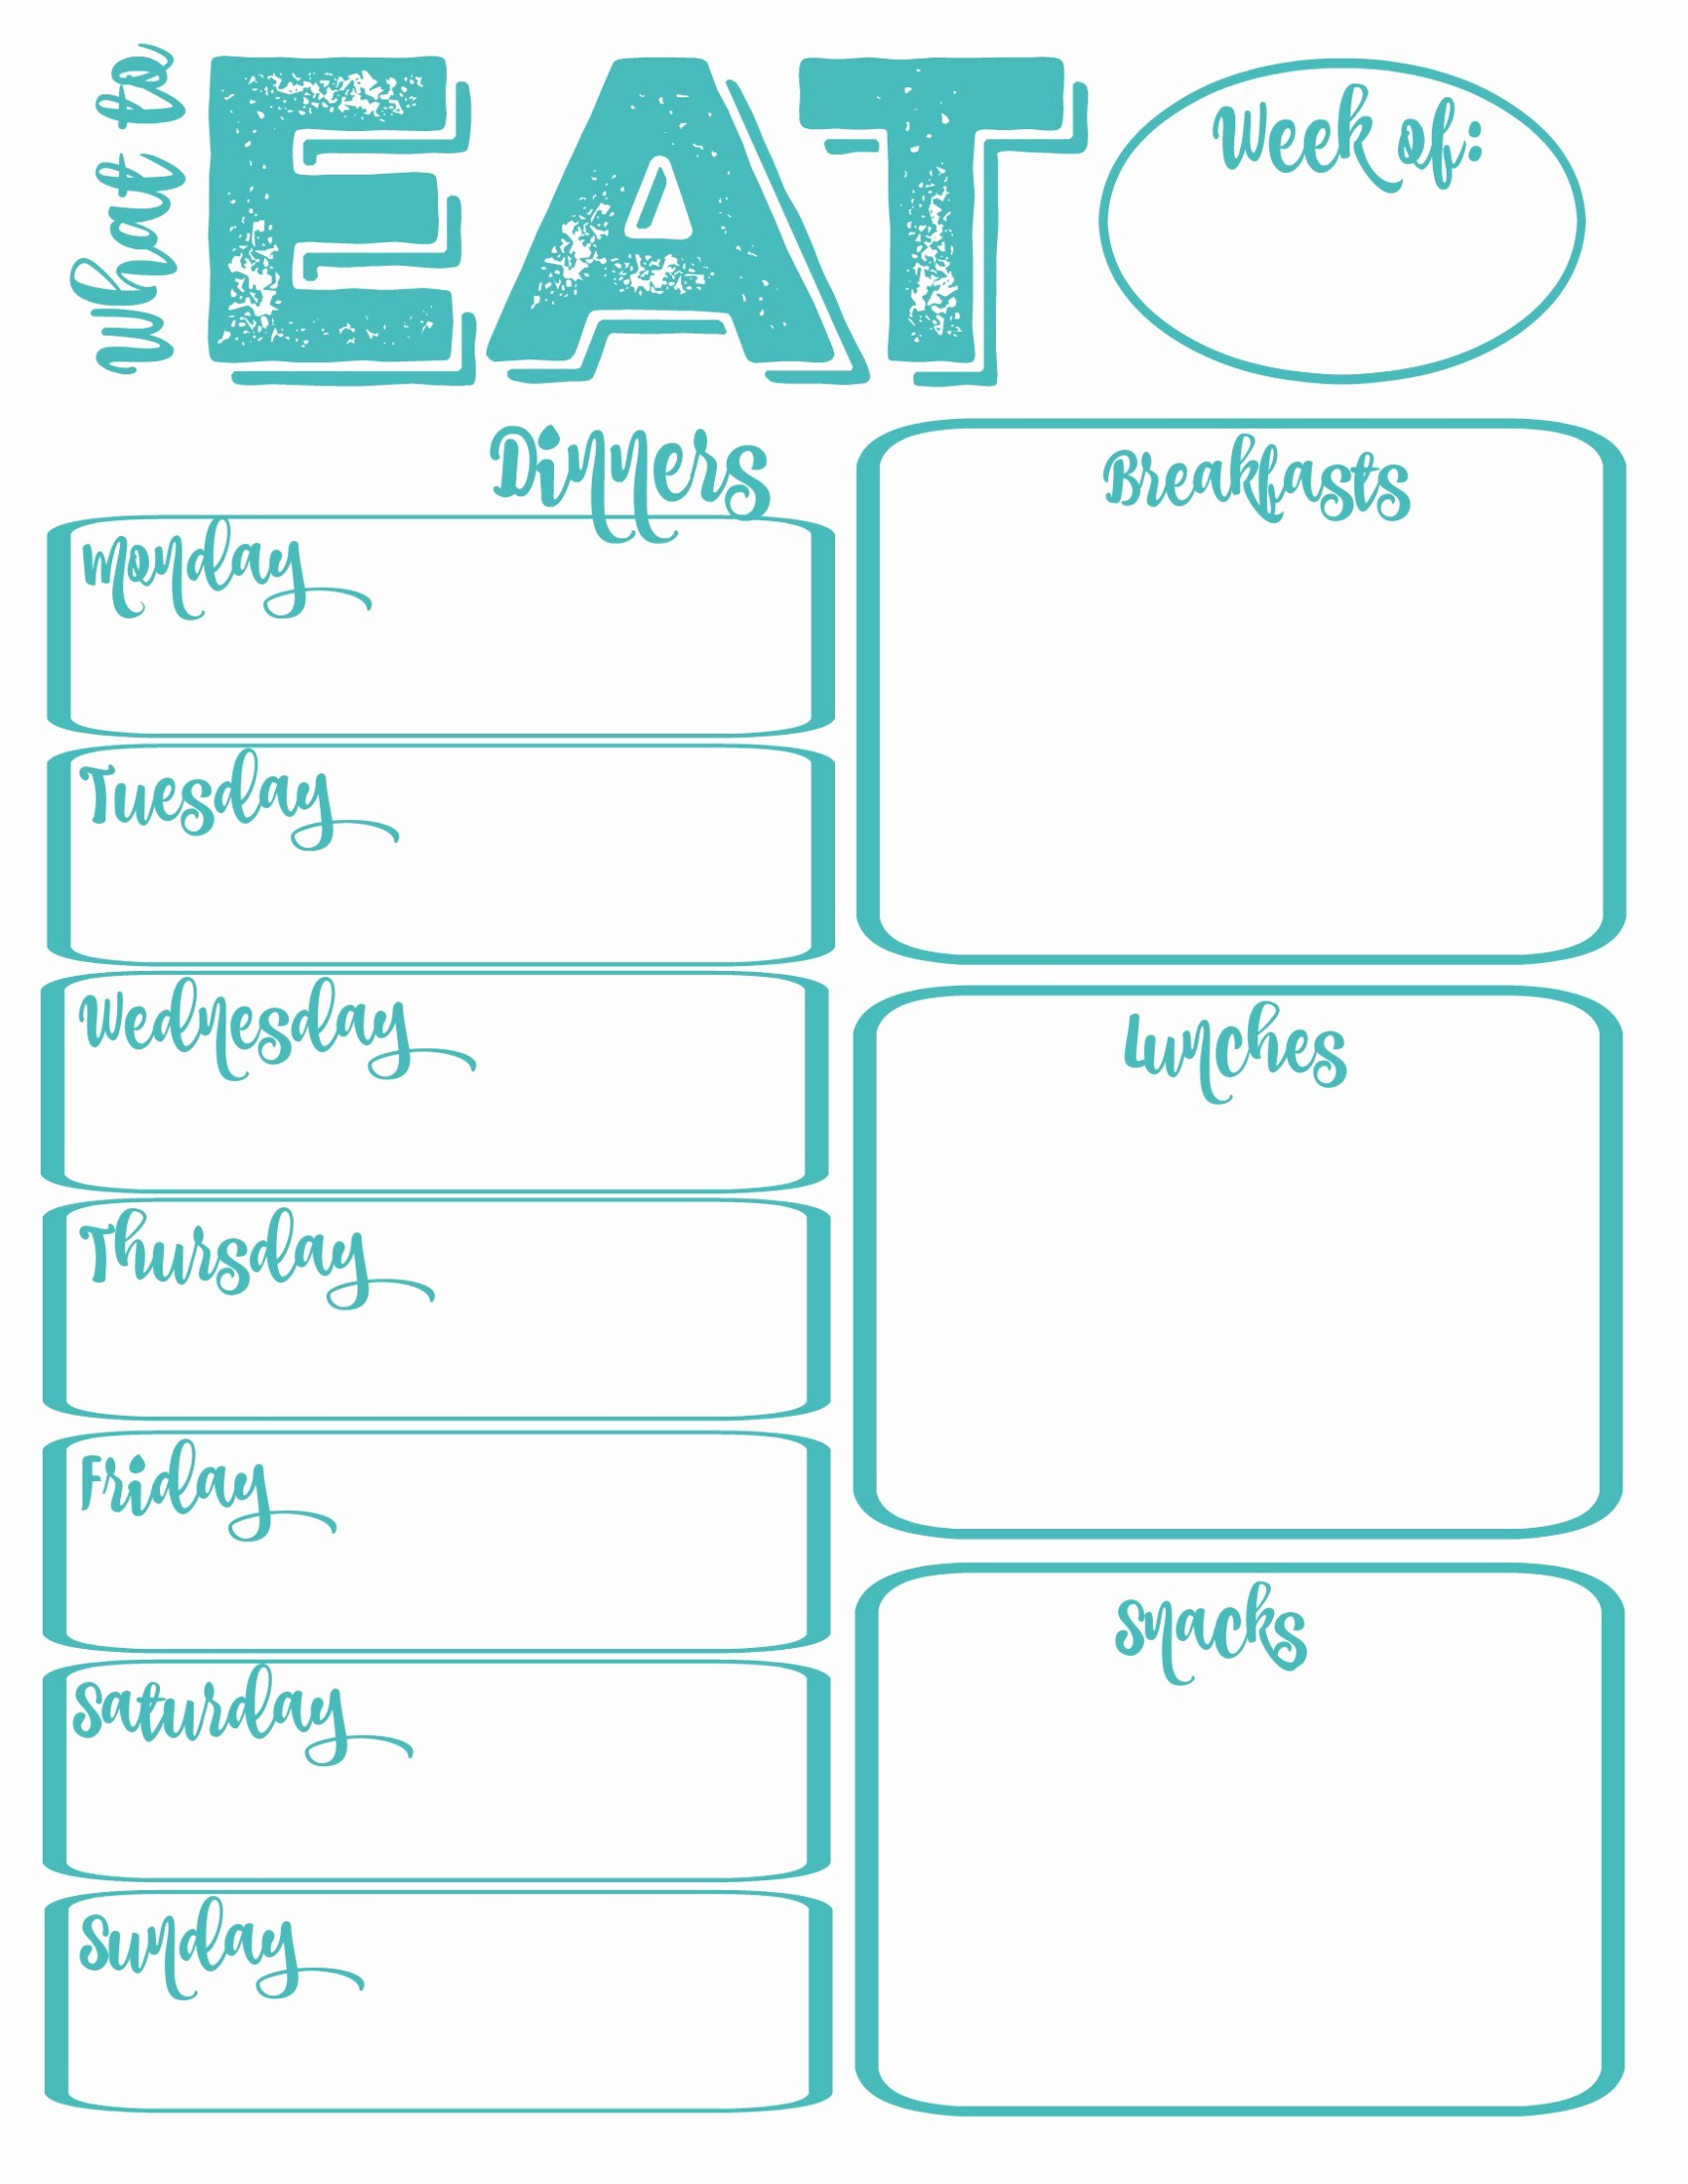 Free Printable Dinner Menu Templates New Pantry Makeover Free Printable Weekly Meal Planner and